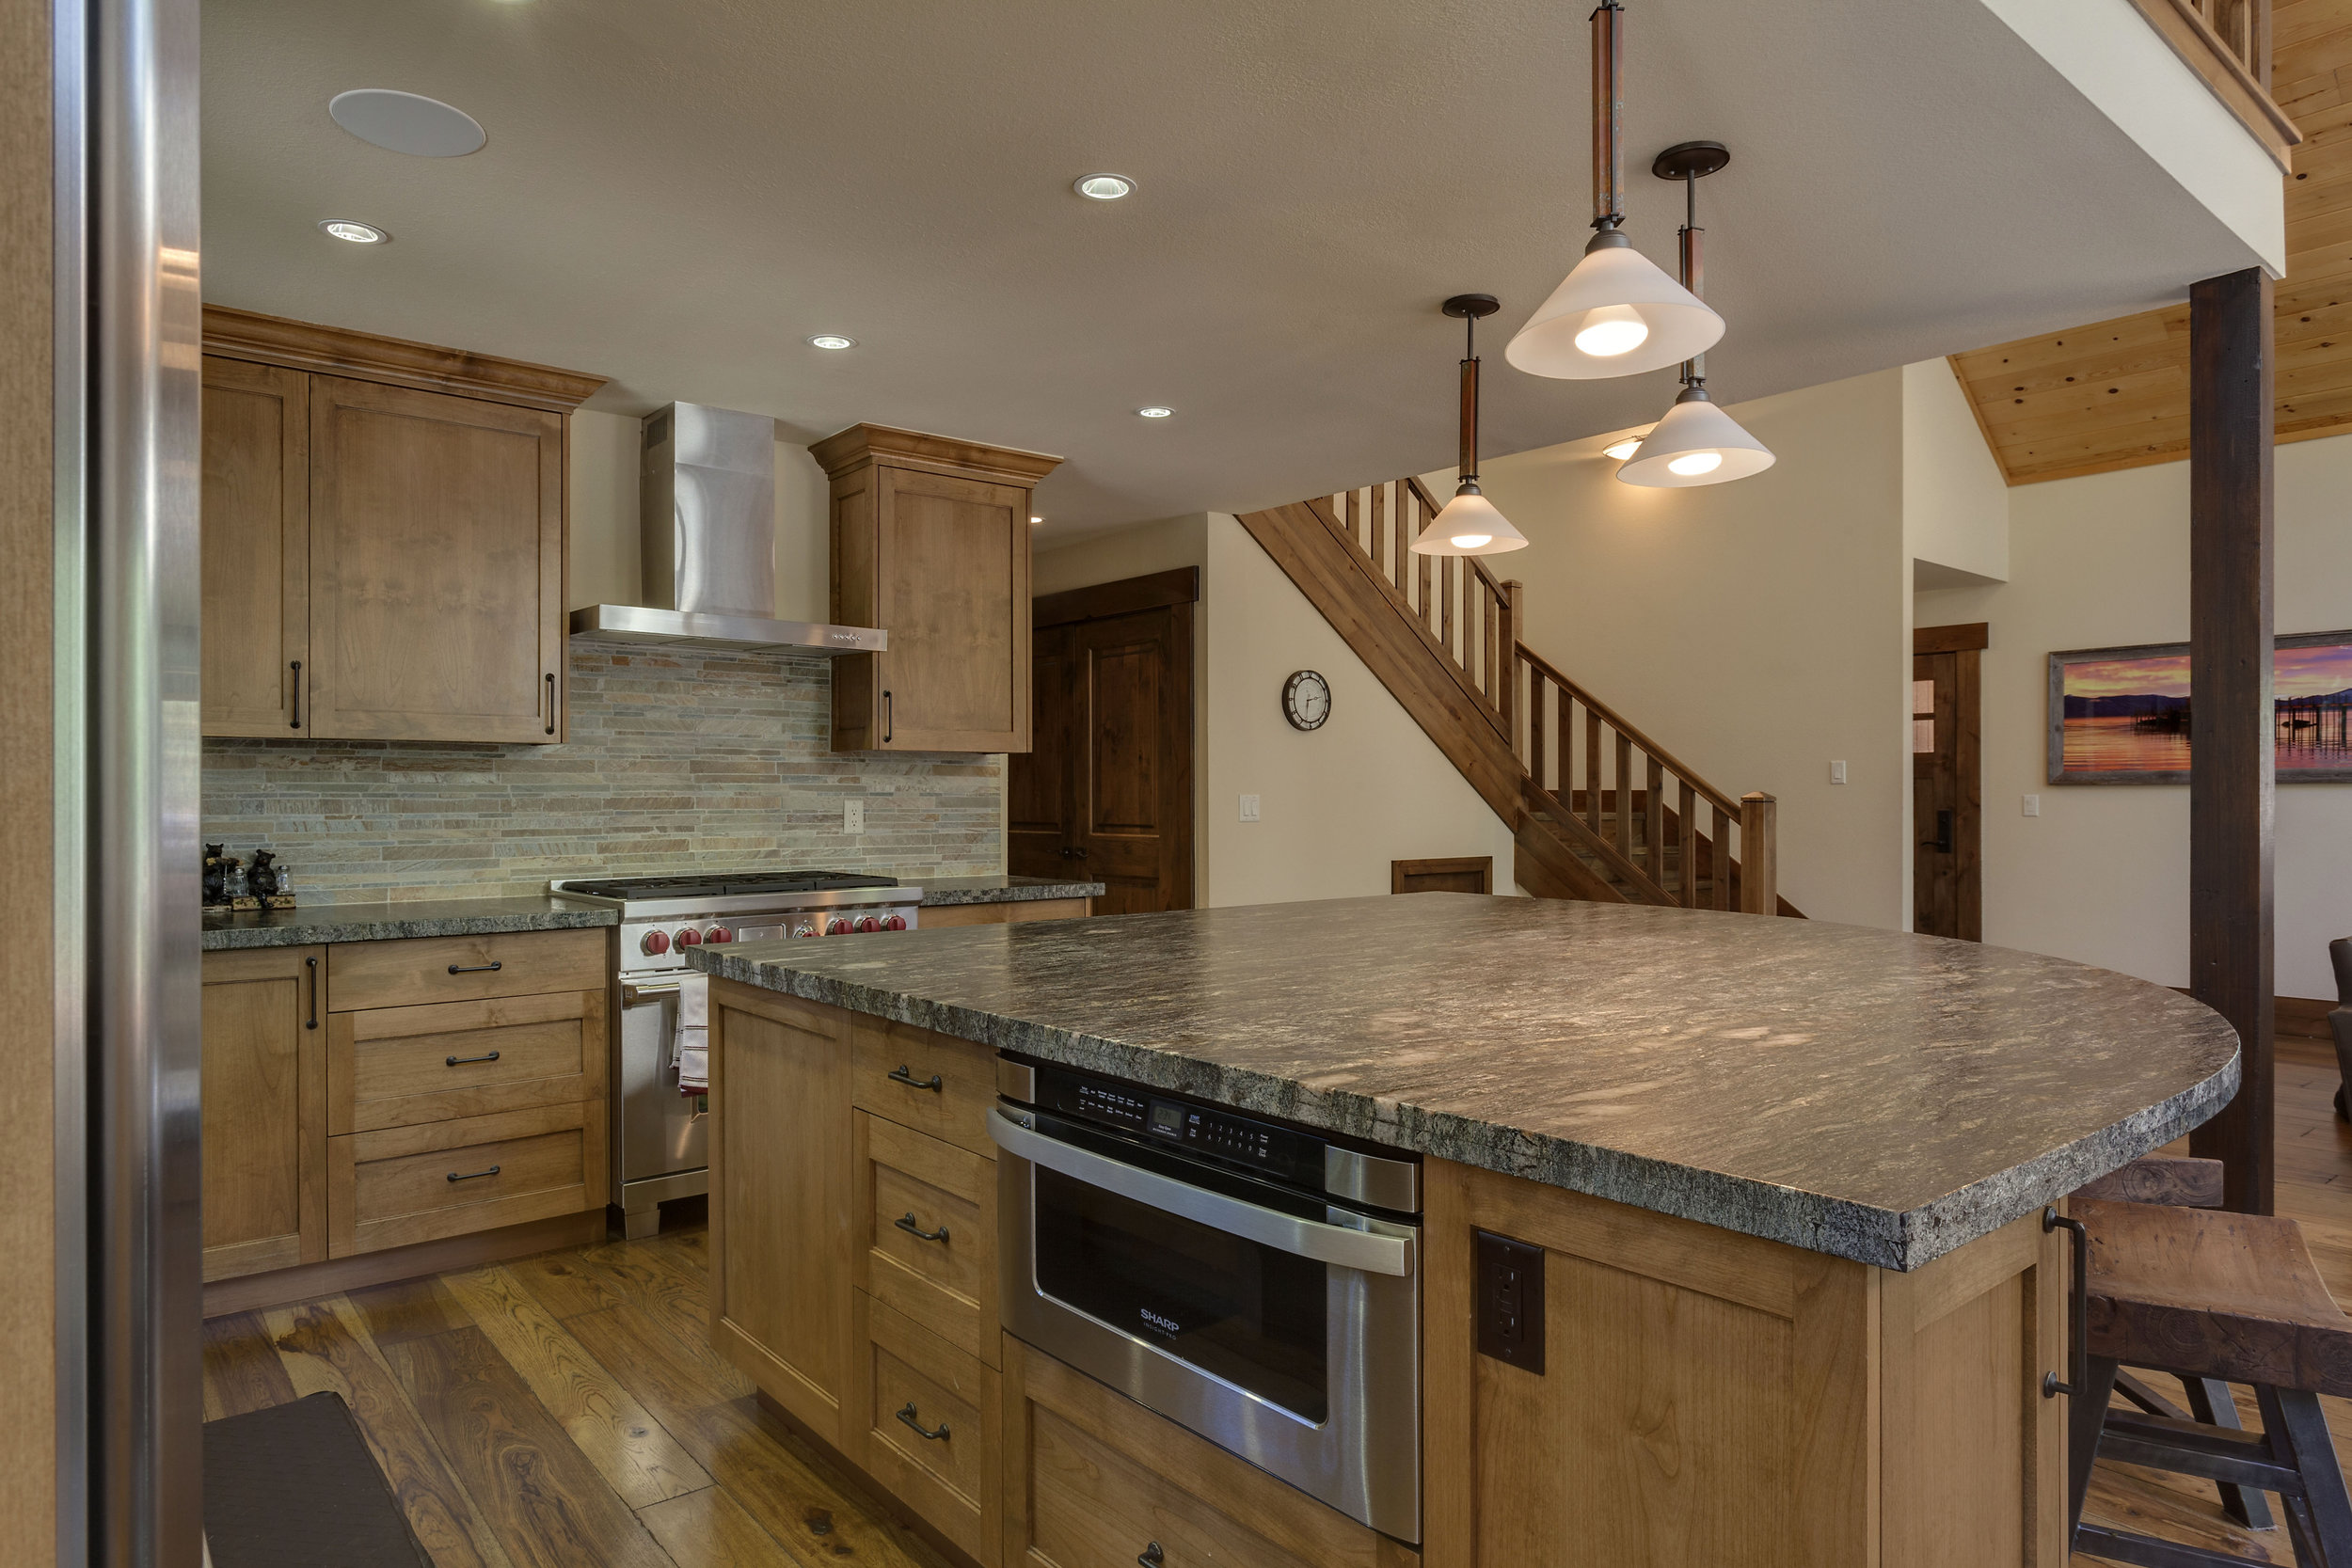 west shore - leathered kosmos countertops.jpg